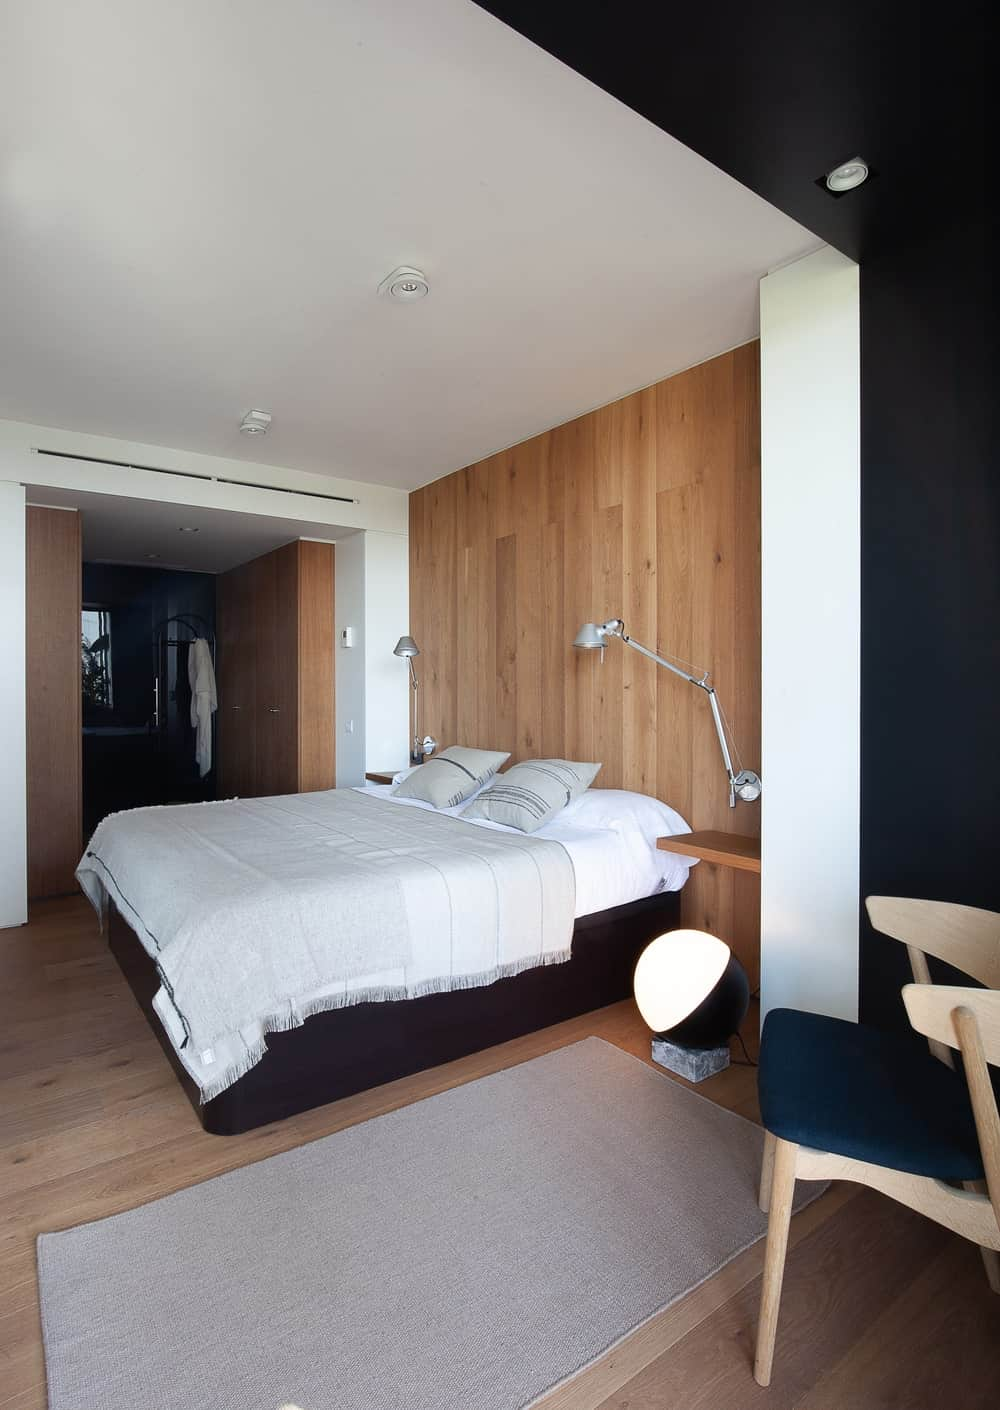 A cozy master bedroom with a cushioned chair and a platform bed complemented by built-in nightstands fixed on the wood-paneled walls. There are facing wardrobes on the side flanking the glass-enclosed bathroom.